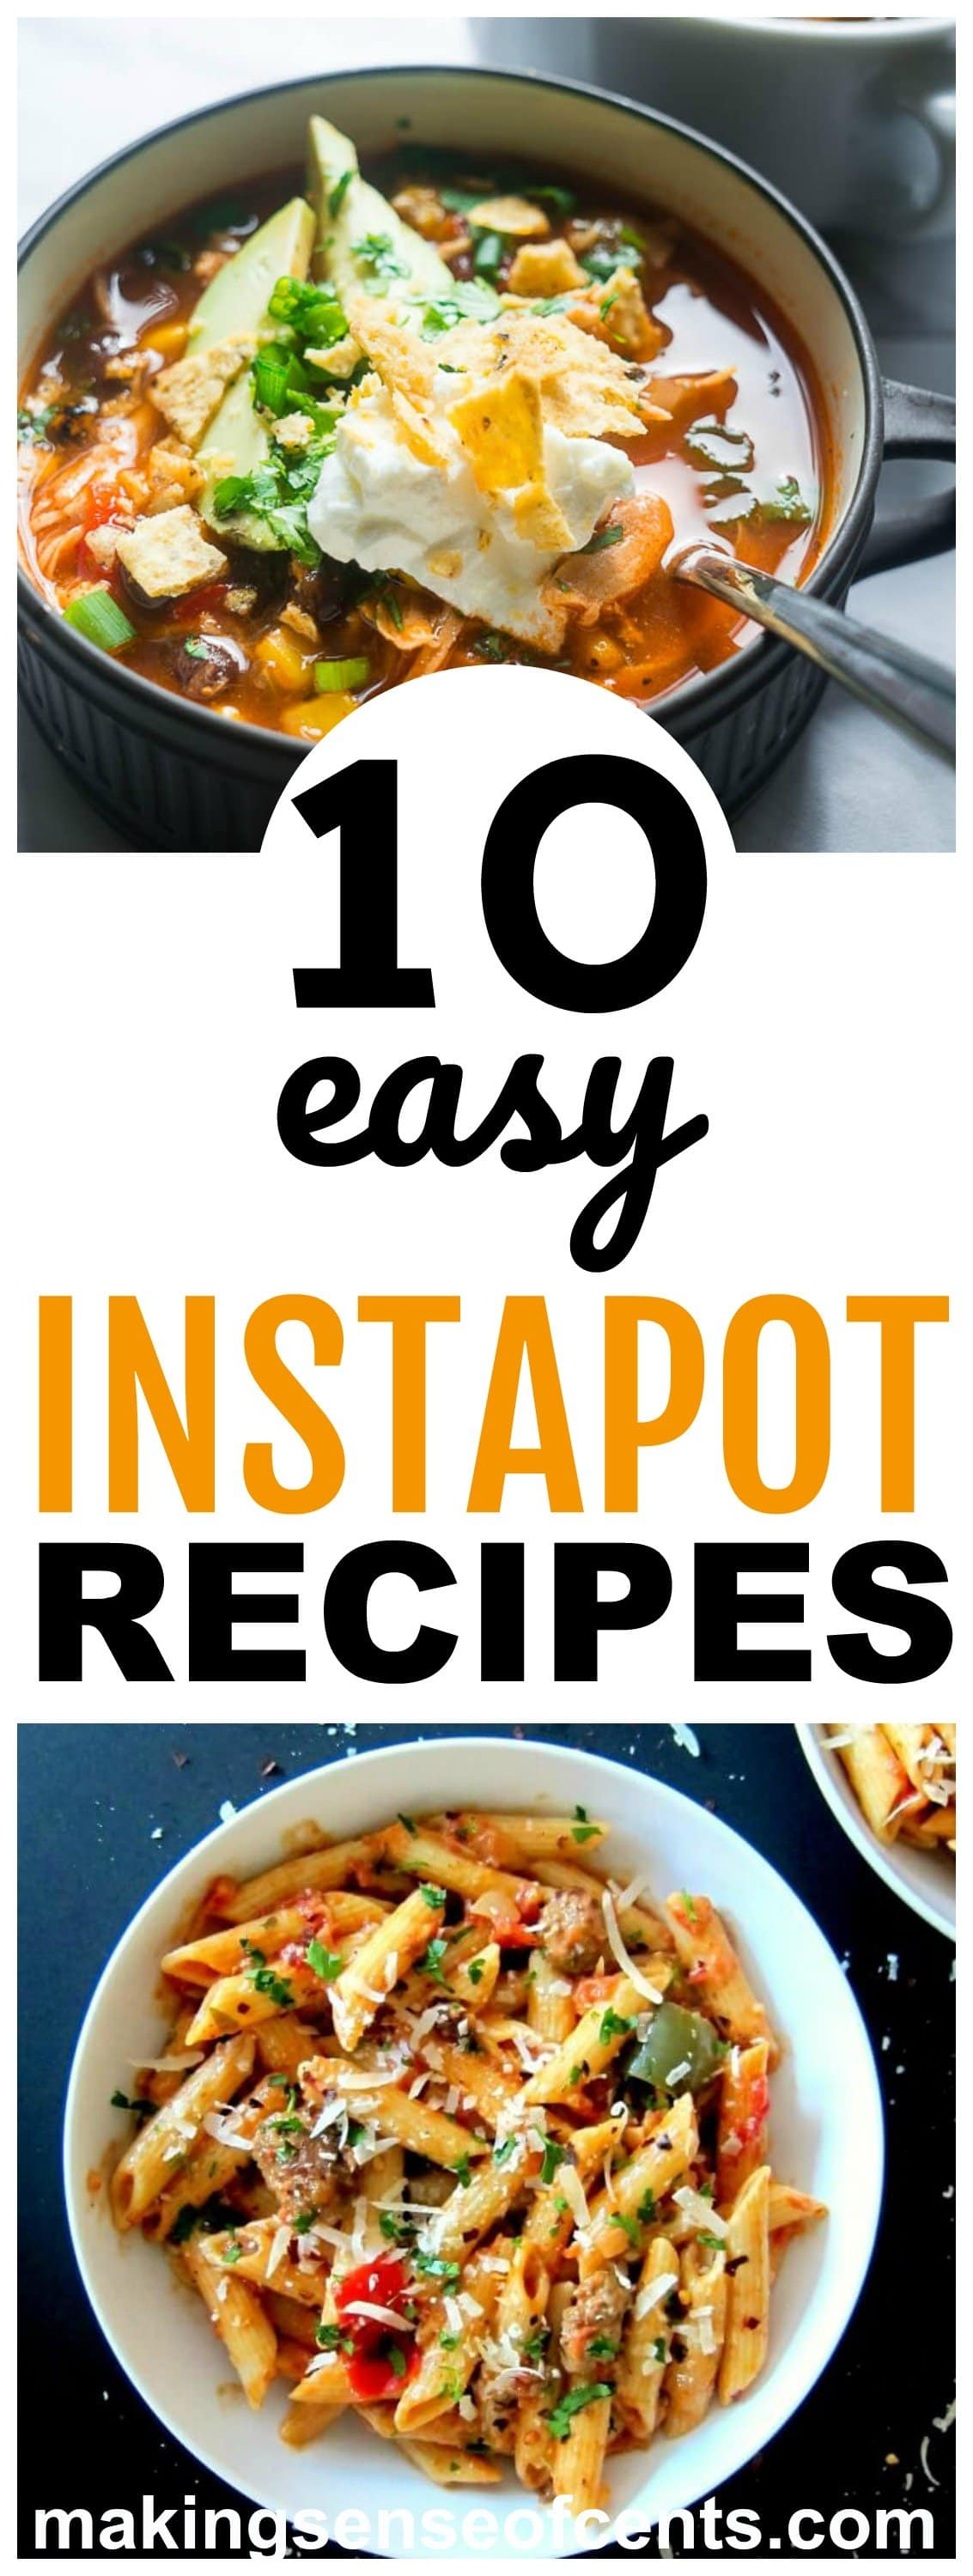 These Instapot recipes are easy, healthy, include ideas for lunch and dinner, and more! #instapotrecipes #instapot #instantpot #instantpotrecipes #easyinstantpotrecipes